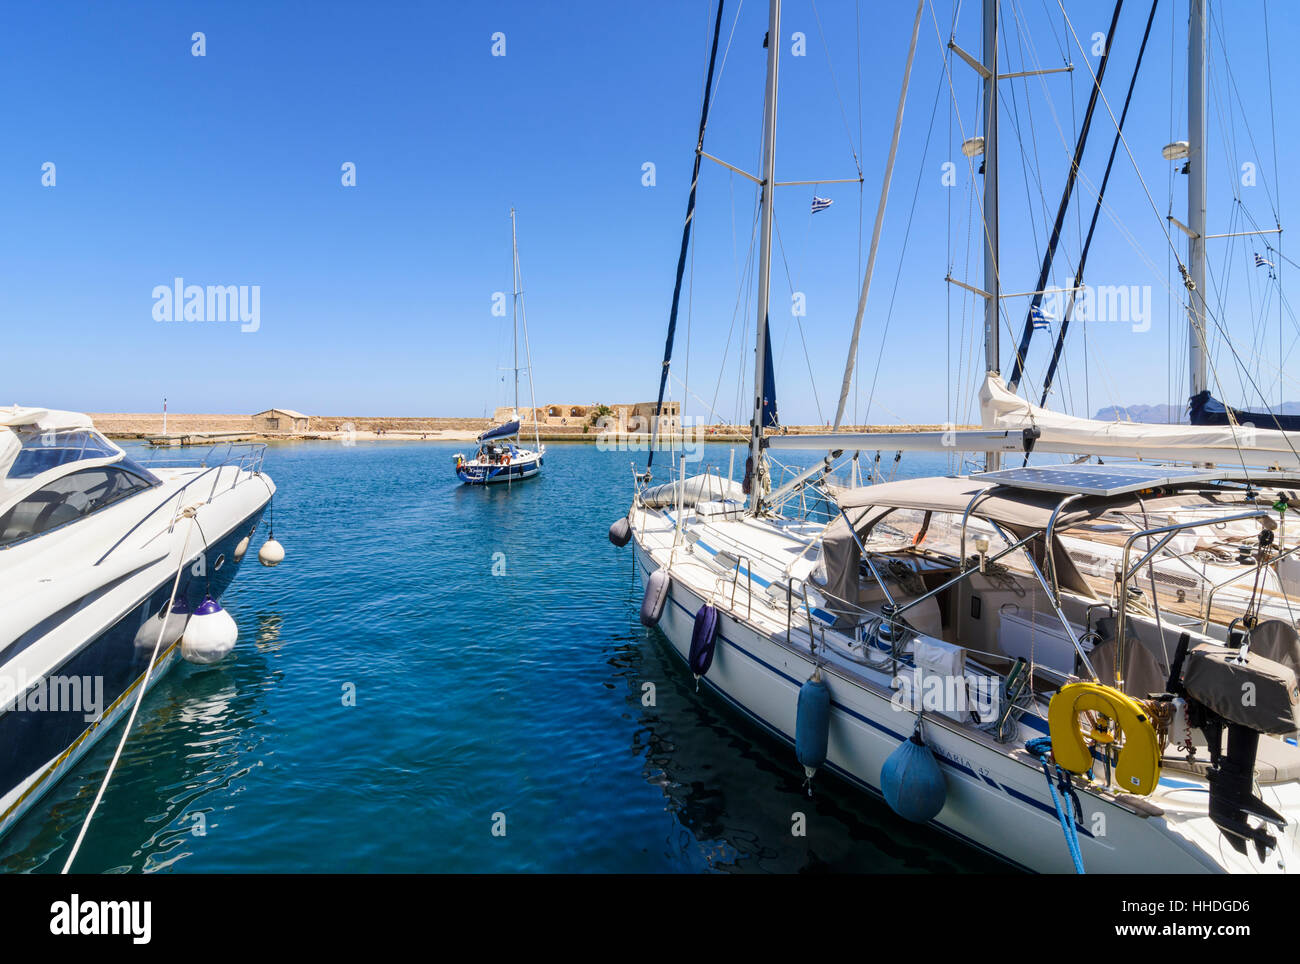 Yachts and boats in the inner harbour of the old Venetian port of Chania, Crete, Greece - Stock Image